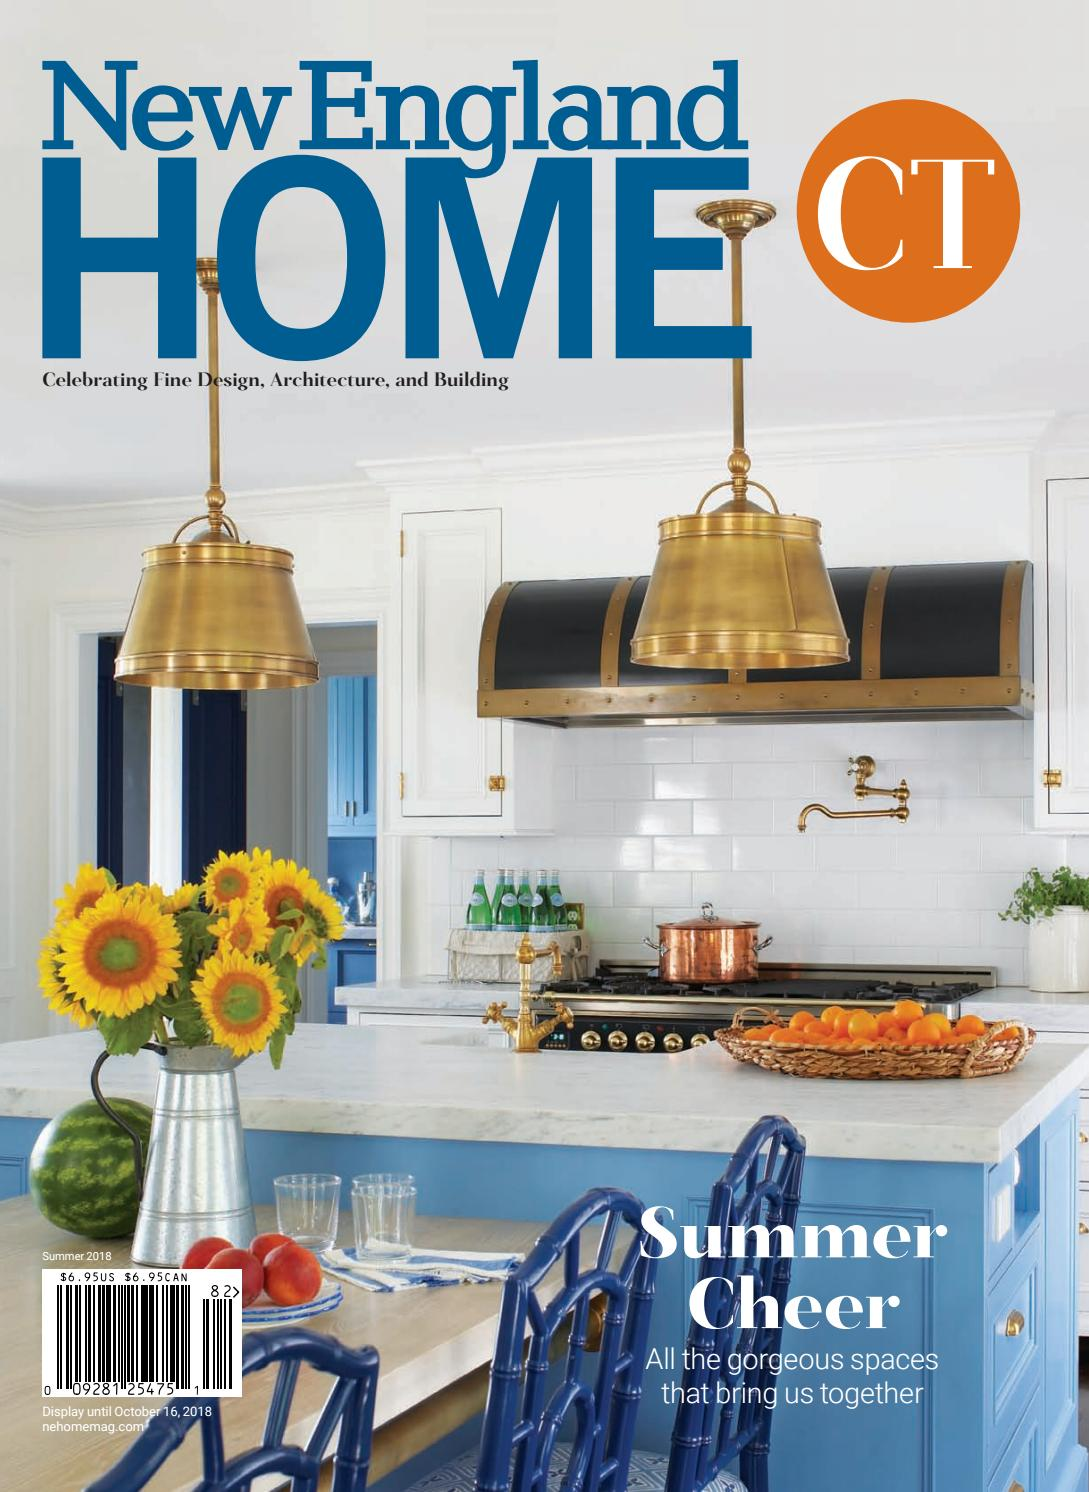 New england home connecticut summer 2018 by new england home magazine llc issuu